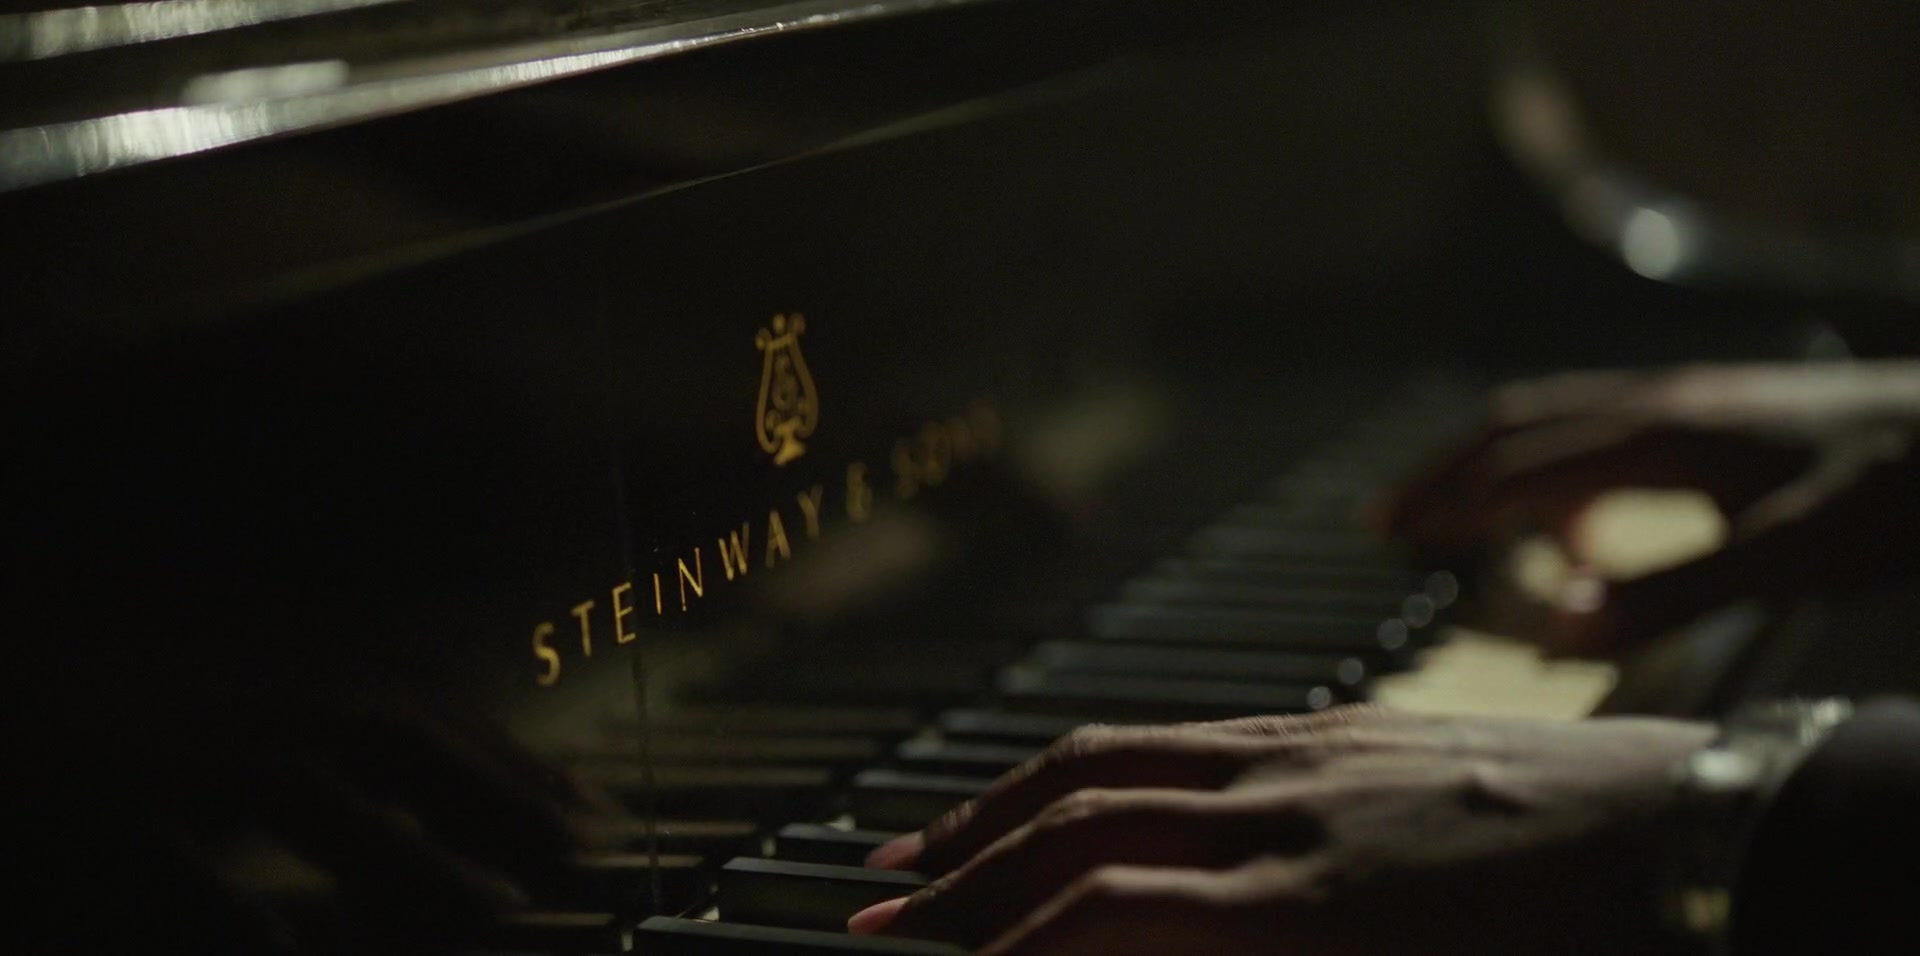 Steinway & Sons Pianos Used by Mahershala Ali in Green